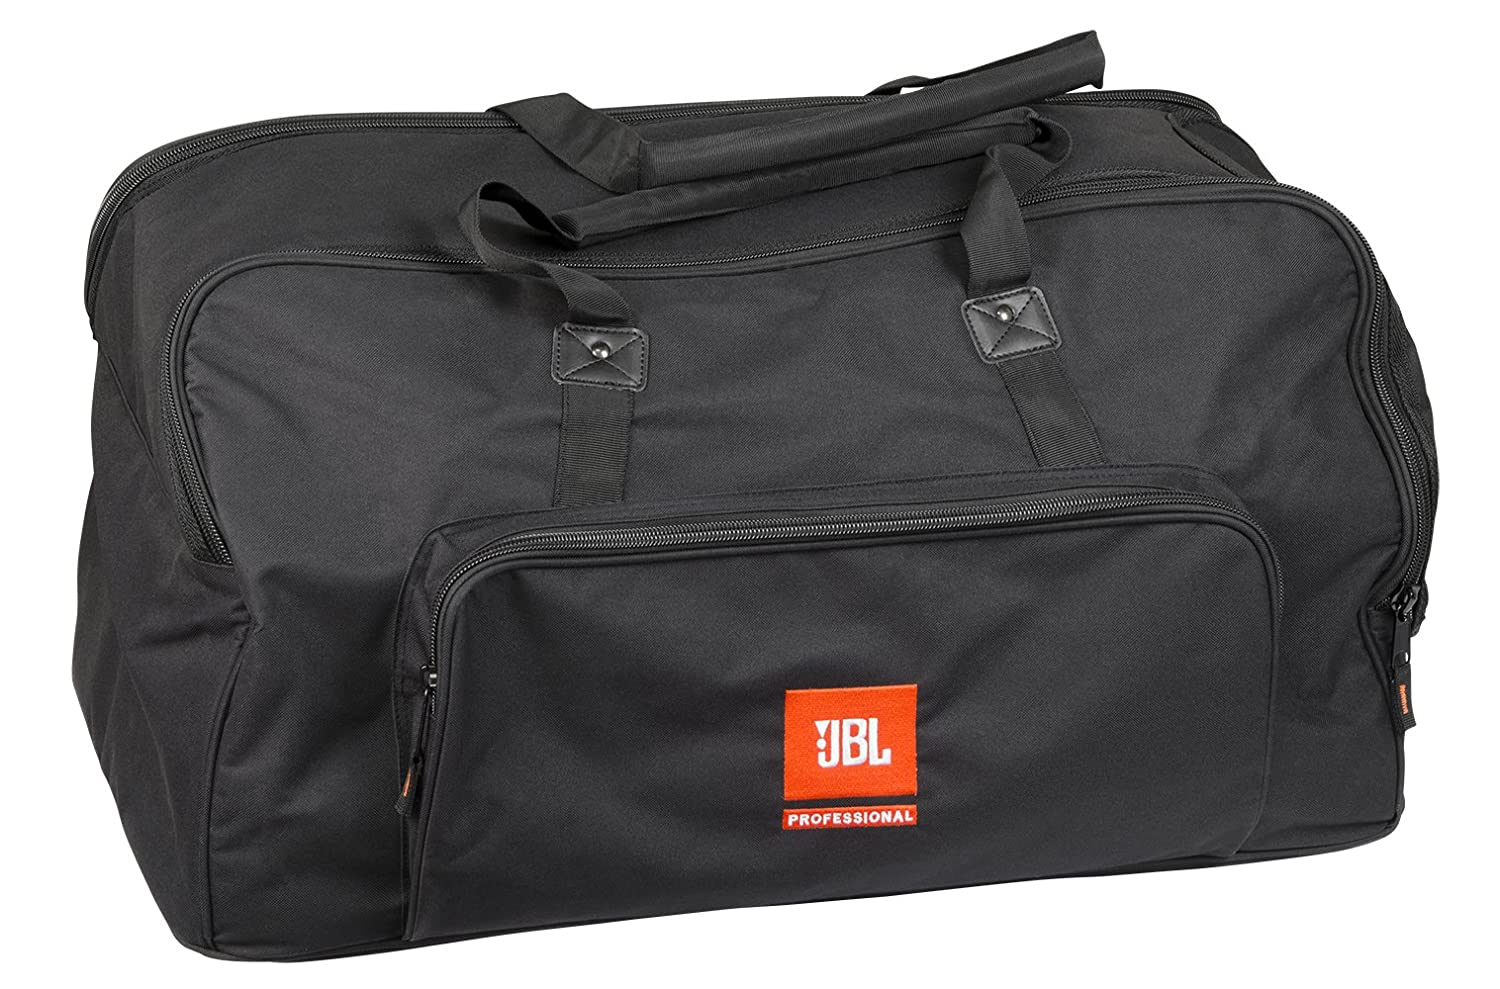 JBL Bags EON615-BAG Carry Bag Fits EON615 Gator Cases